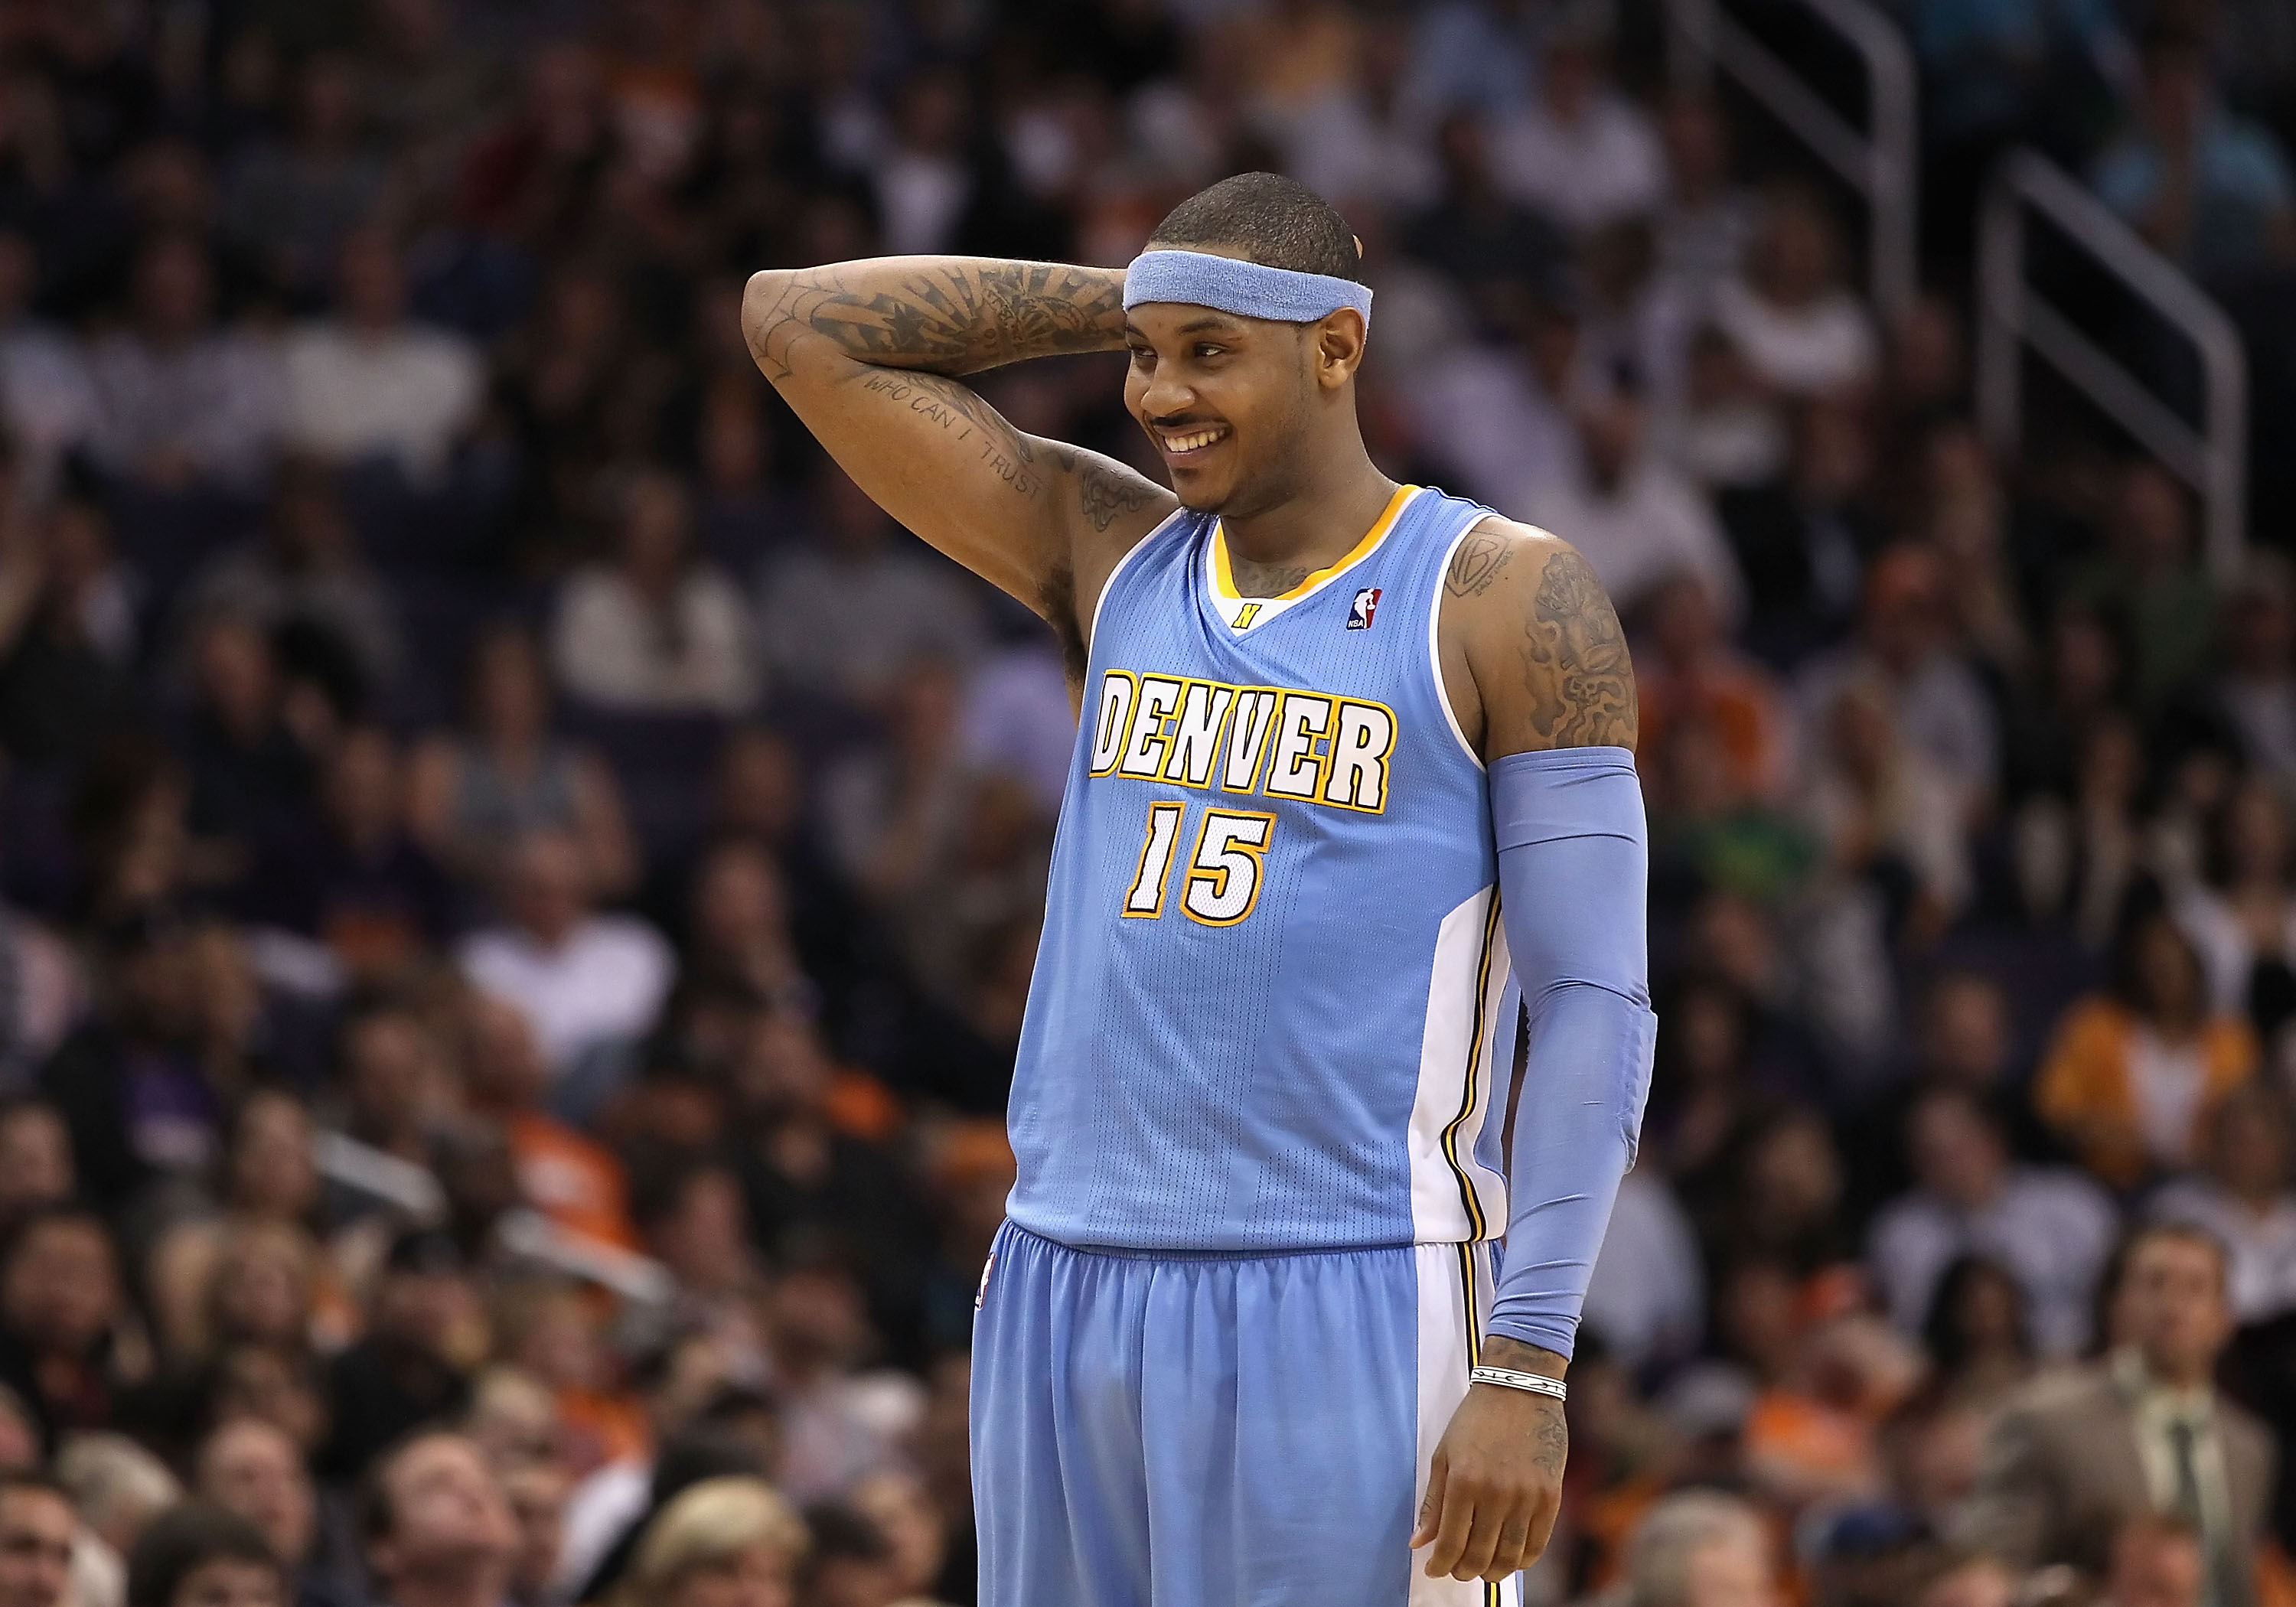 ff5091838805 PHOENIX - NOVEMBER 15  Carmelo Anthony  15 of the Denver Nuggets during the  NBA